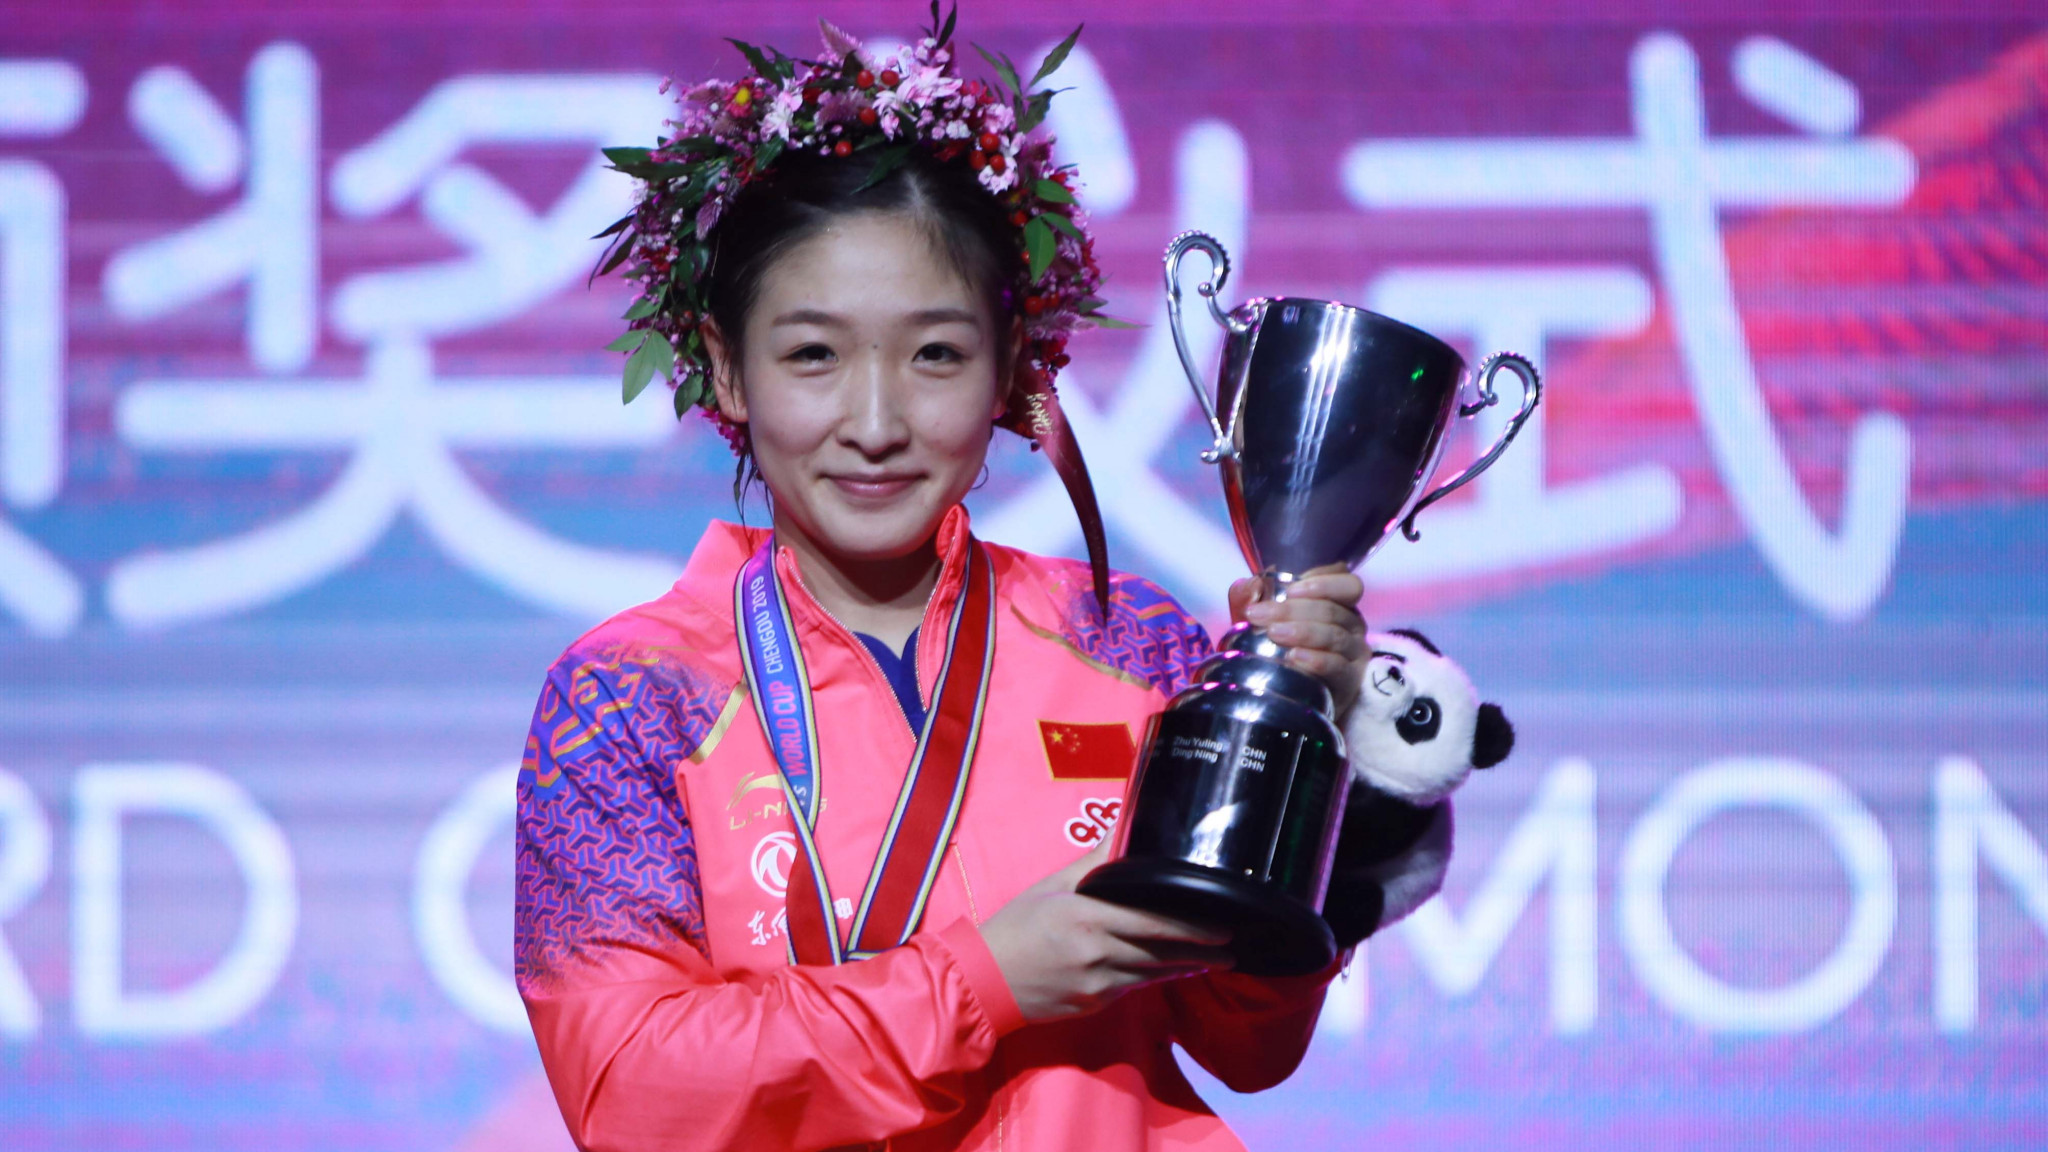 Liu defeats top seed Zhu to win ITTF Women's World Cup